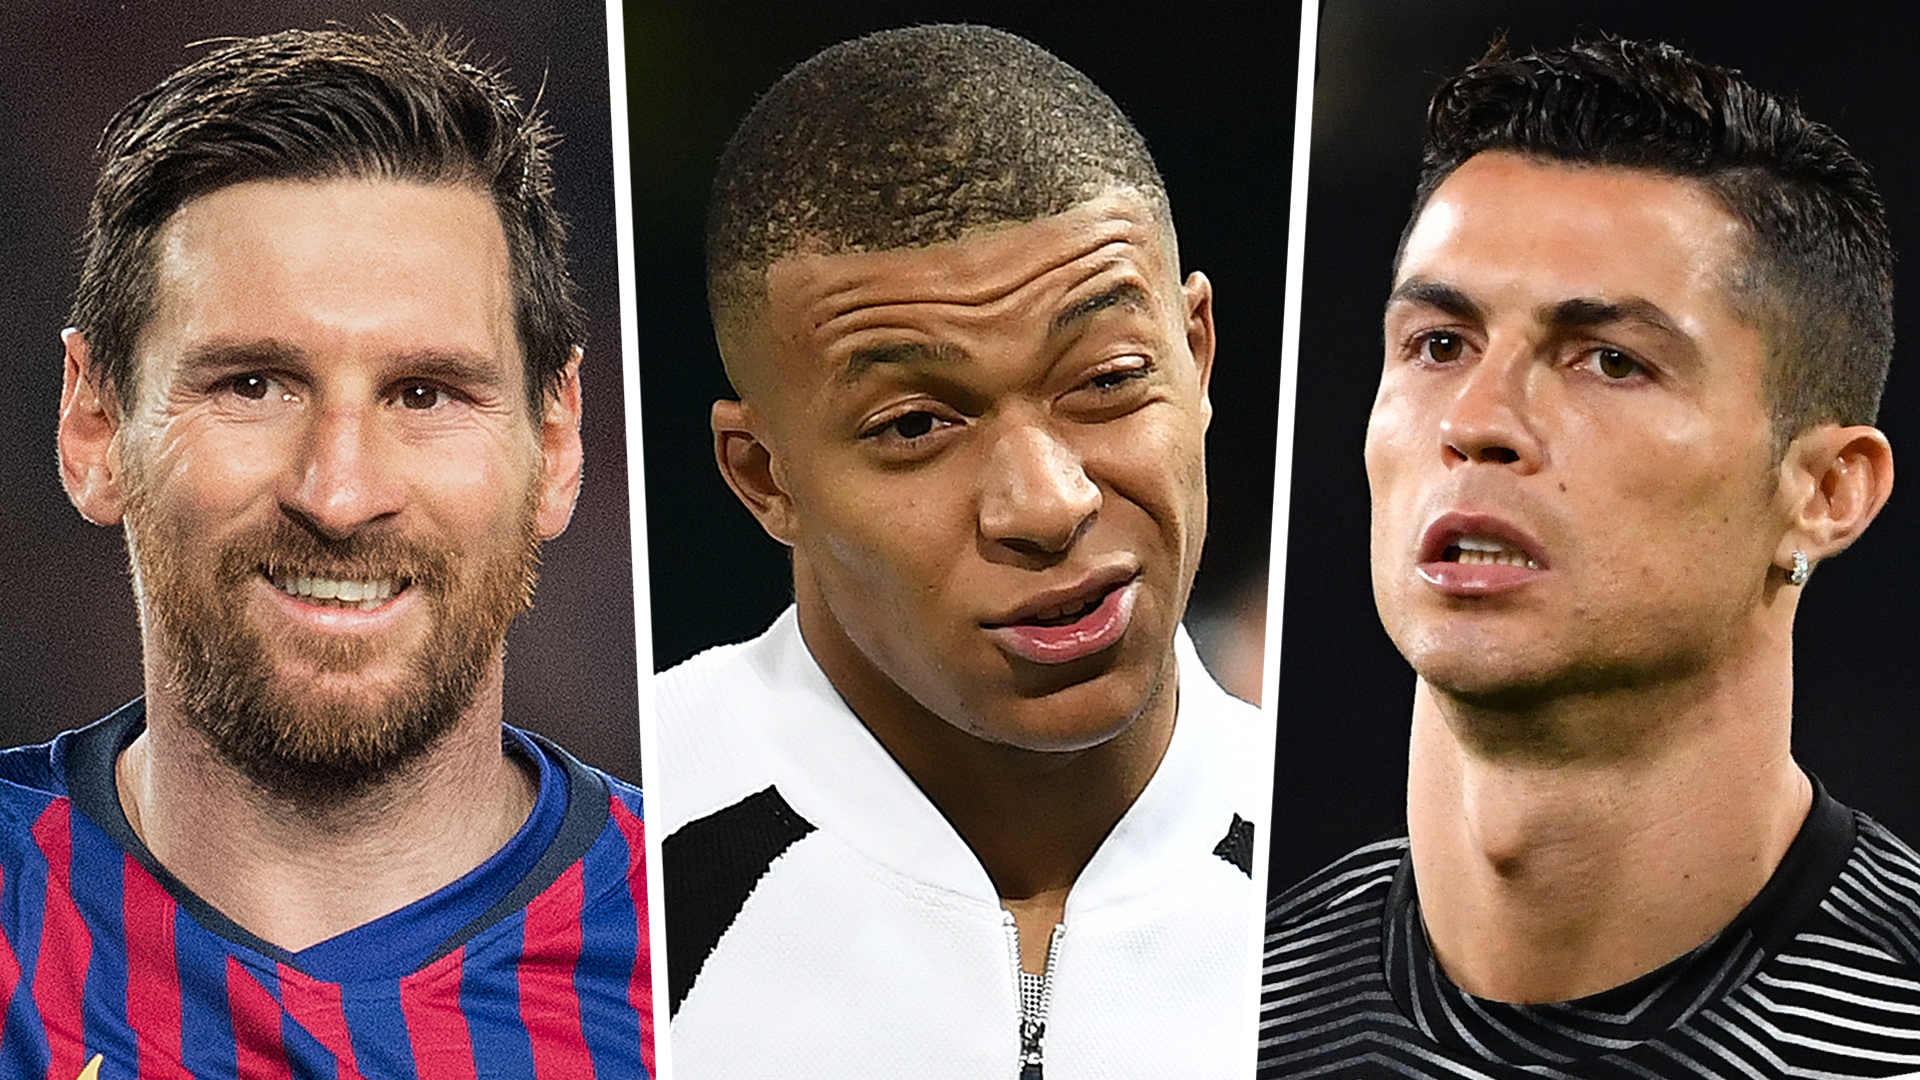 'I'd retire!' - Mbappe can't pick between 'monsters' Messi Ronaldo